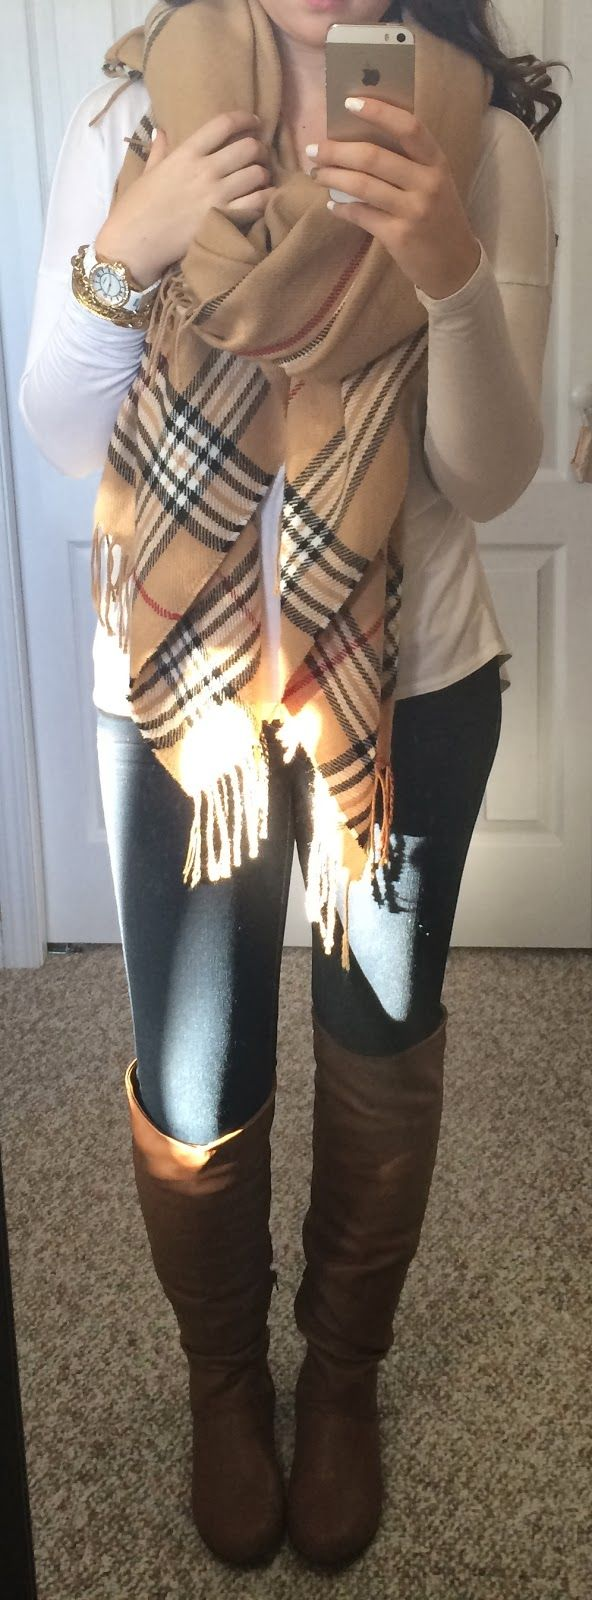 simple, comfortable, stylish outfits for school!